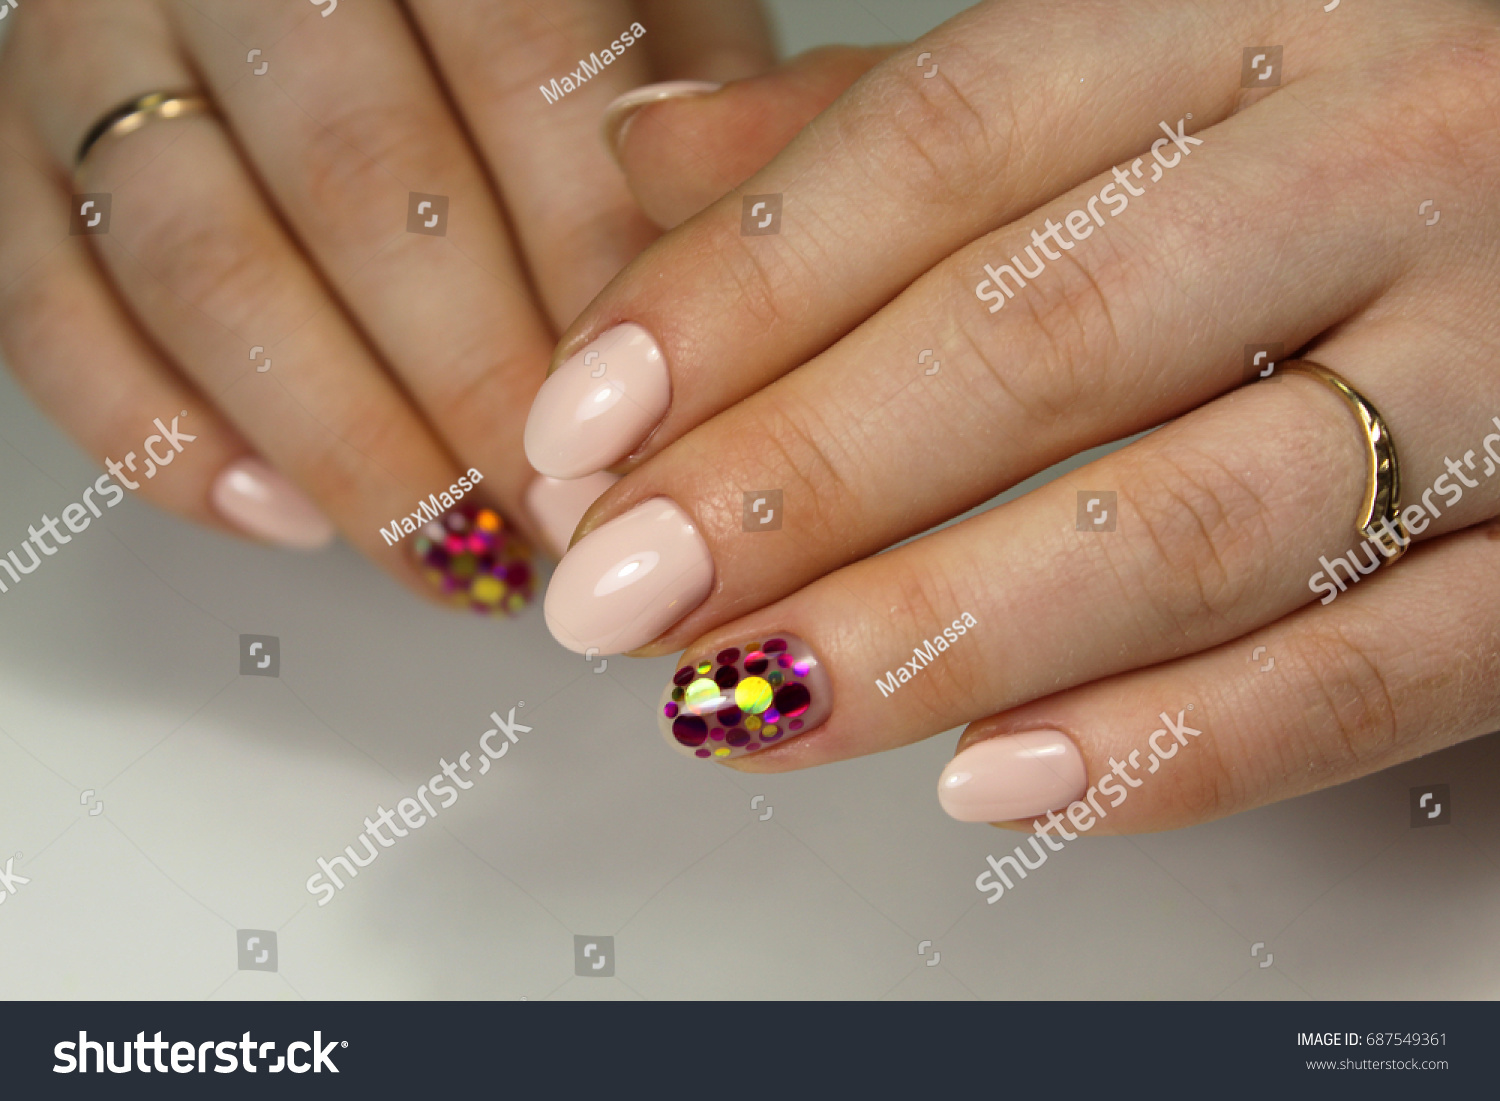 Nail Design Short Nails Stock Photo 687549361 - Shutterstock